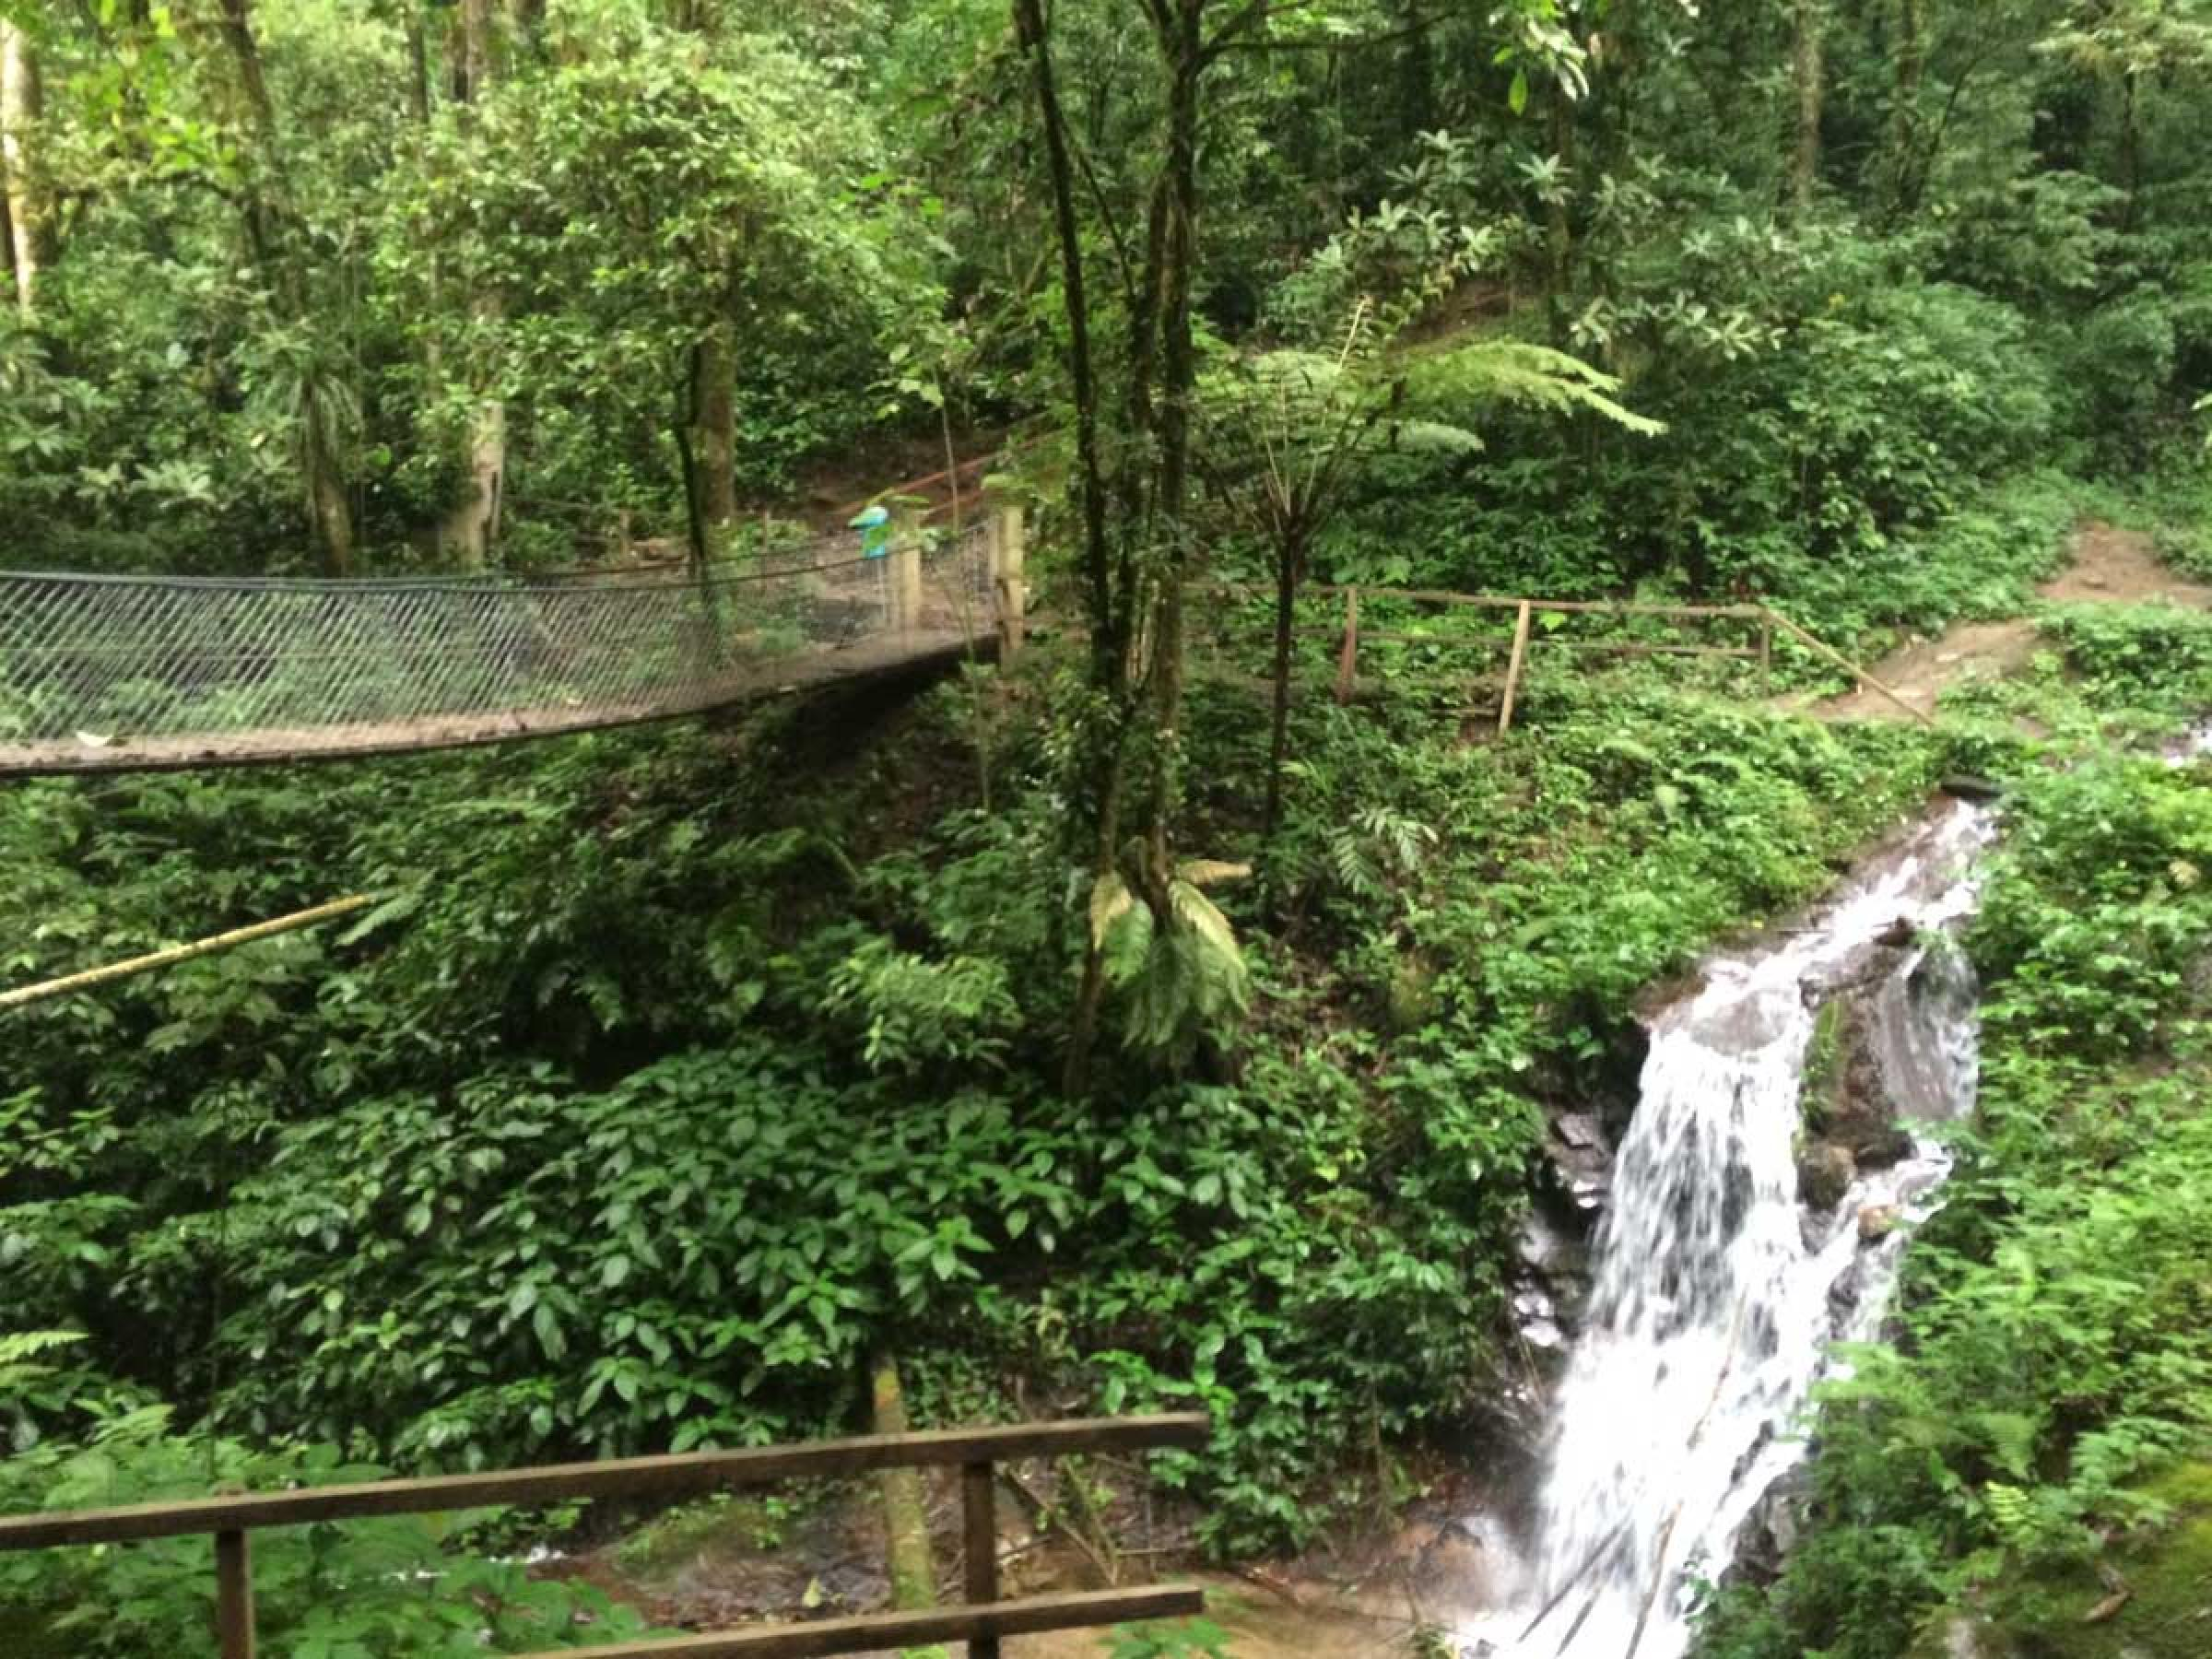 Searching for the Quetzal